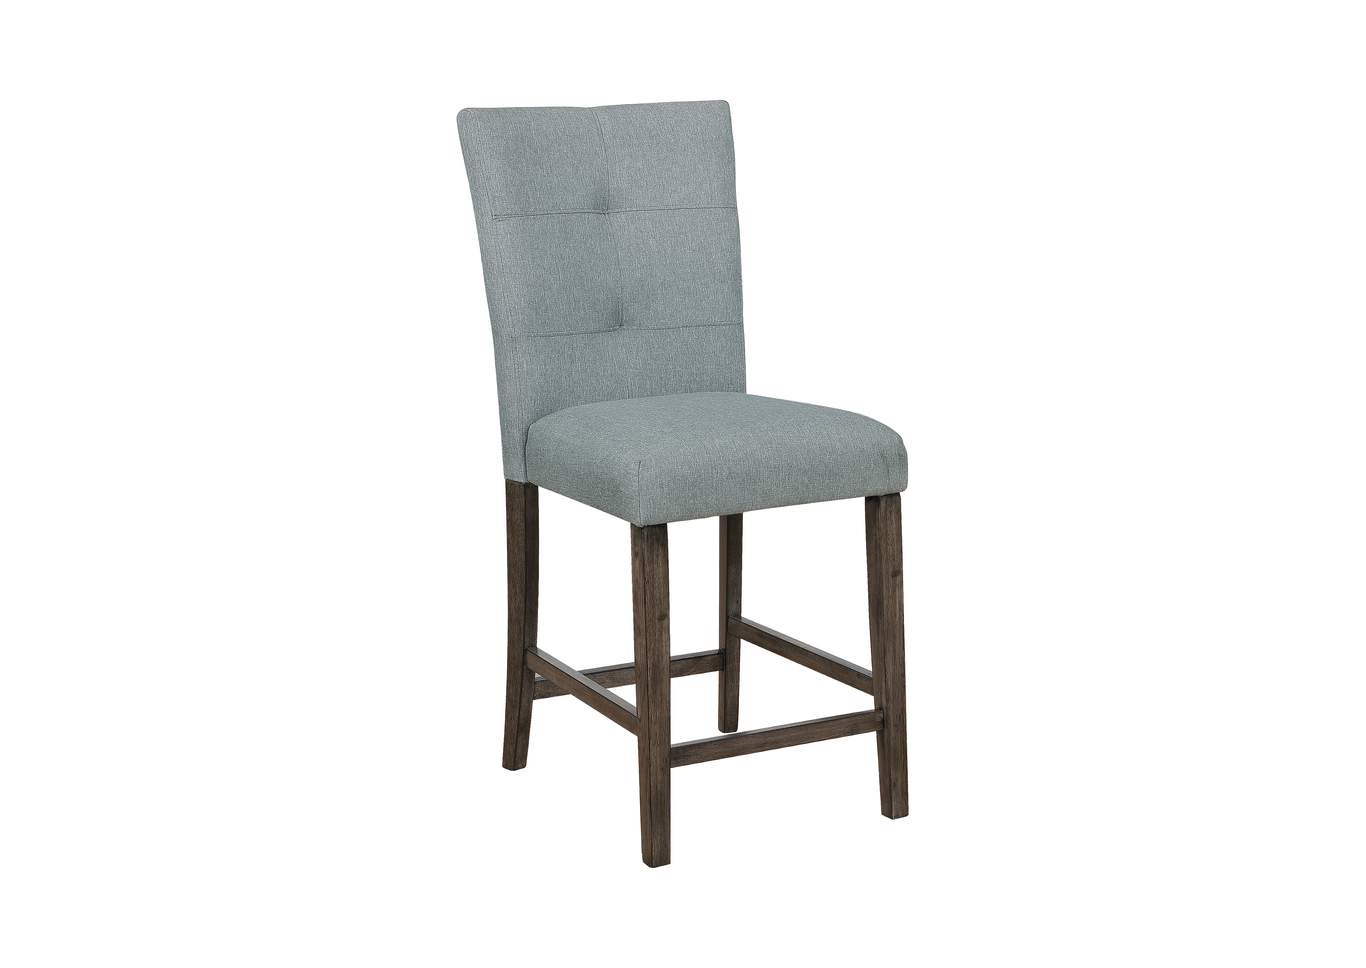 upholstered counter height chairs hardwood floor chair mat 46 x 60 montana s home furniture hollis grey set of 2 crown mark